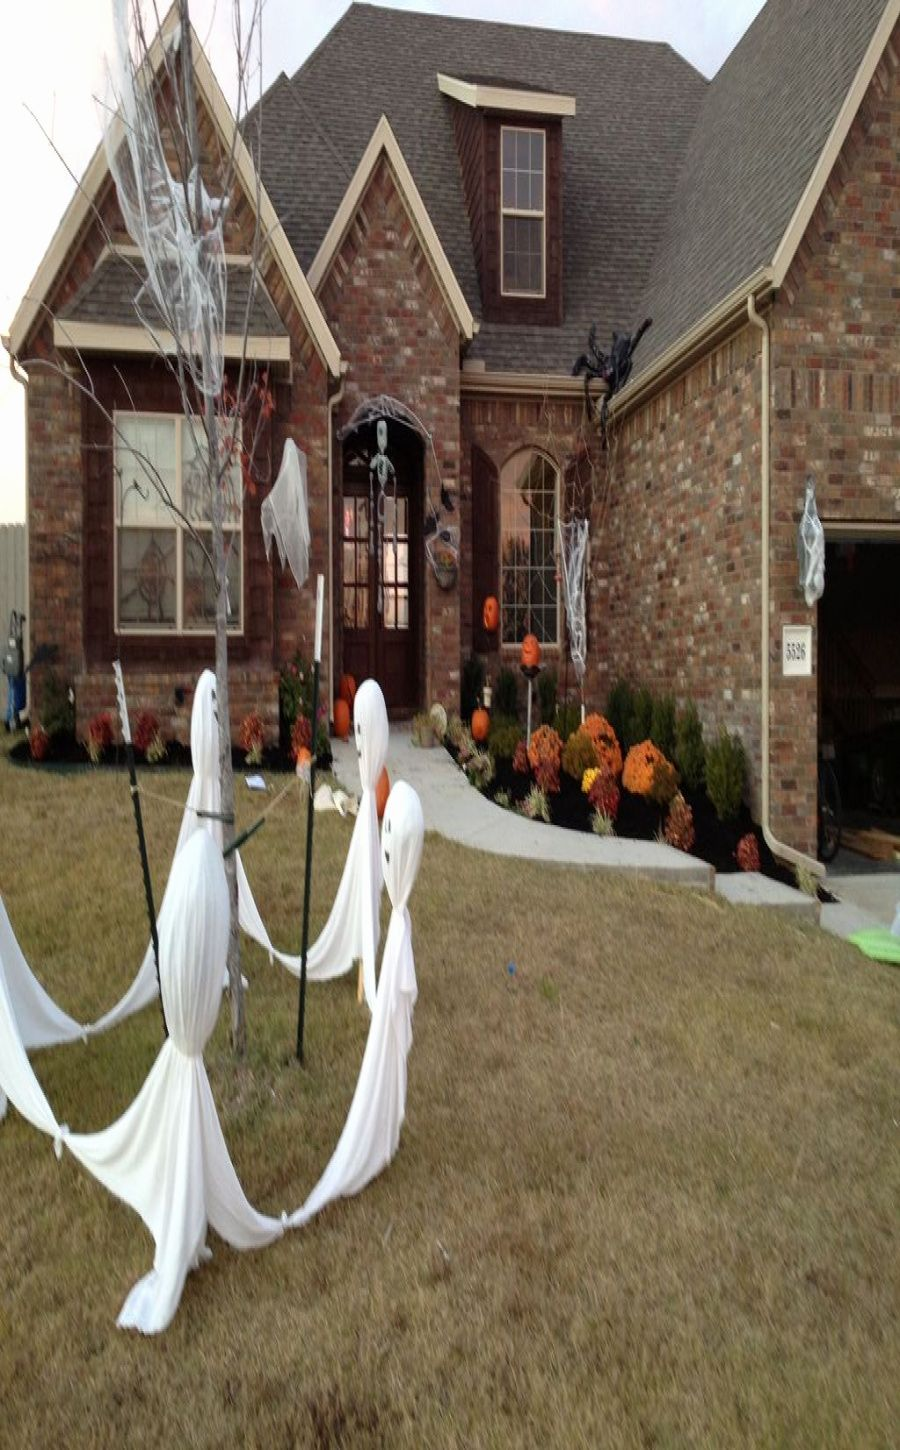 23 Unique Most Fascinating Outdoor Halloween Decorations That